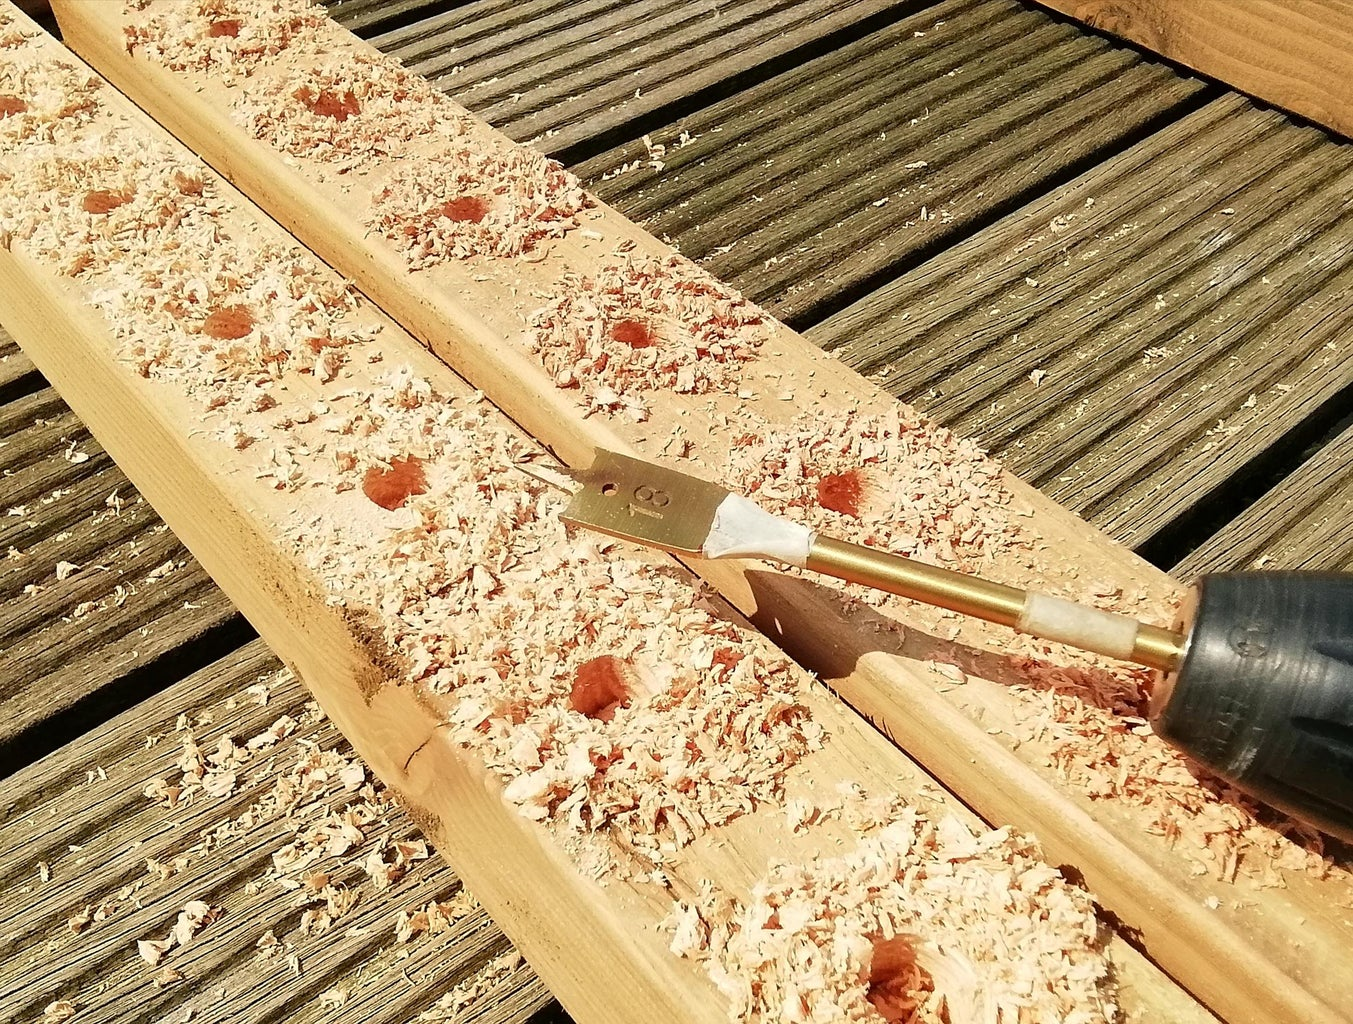 Drill the Holes for the Rebar